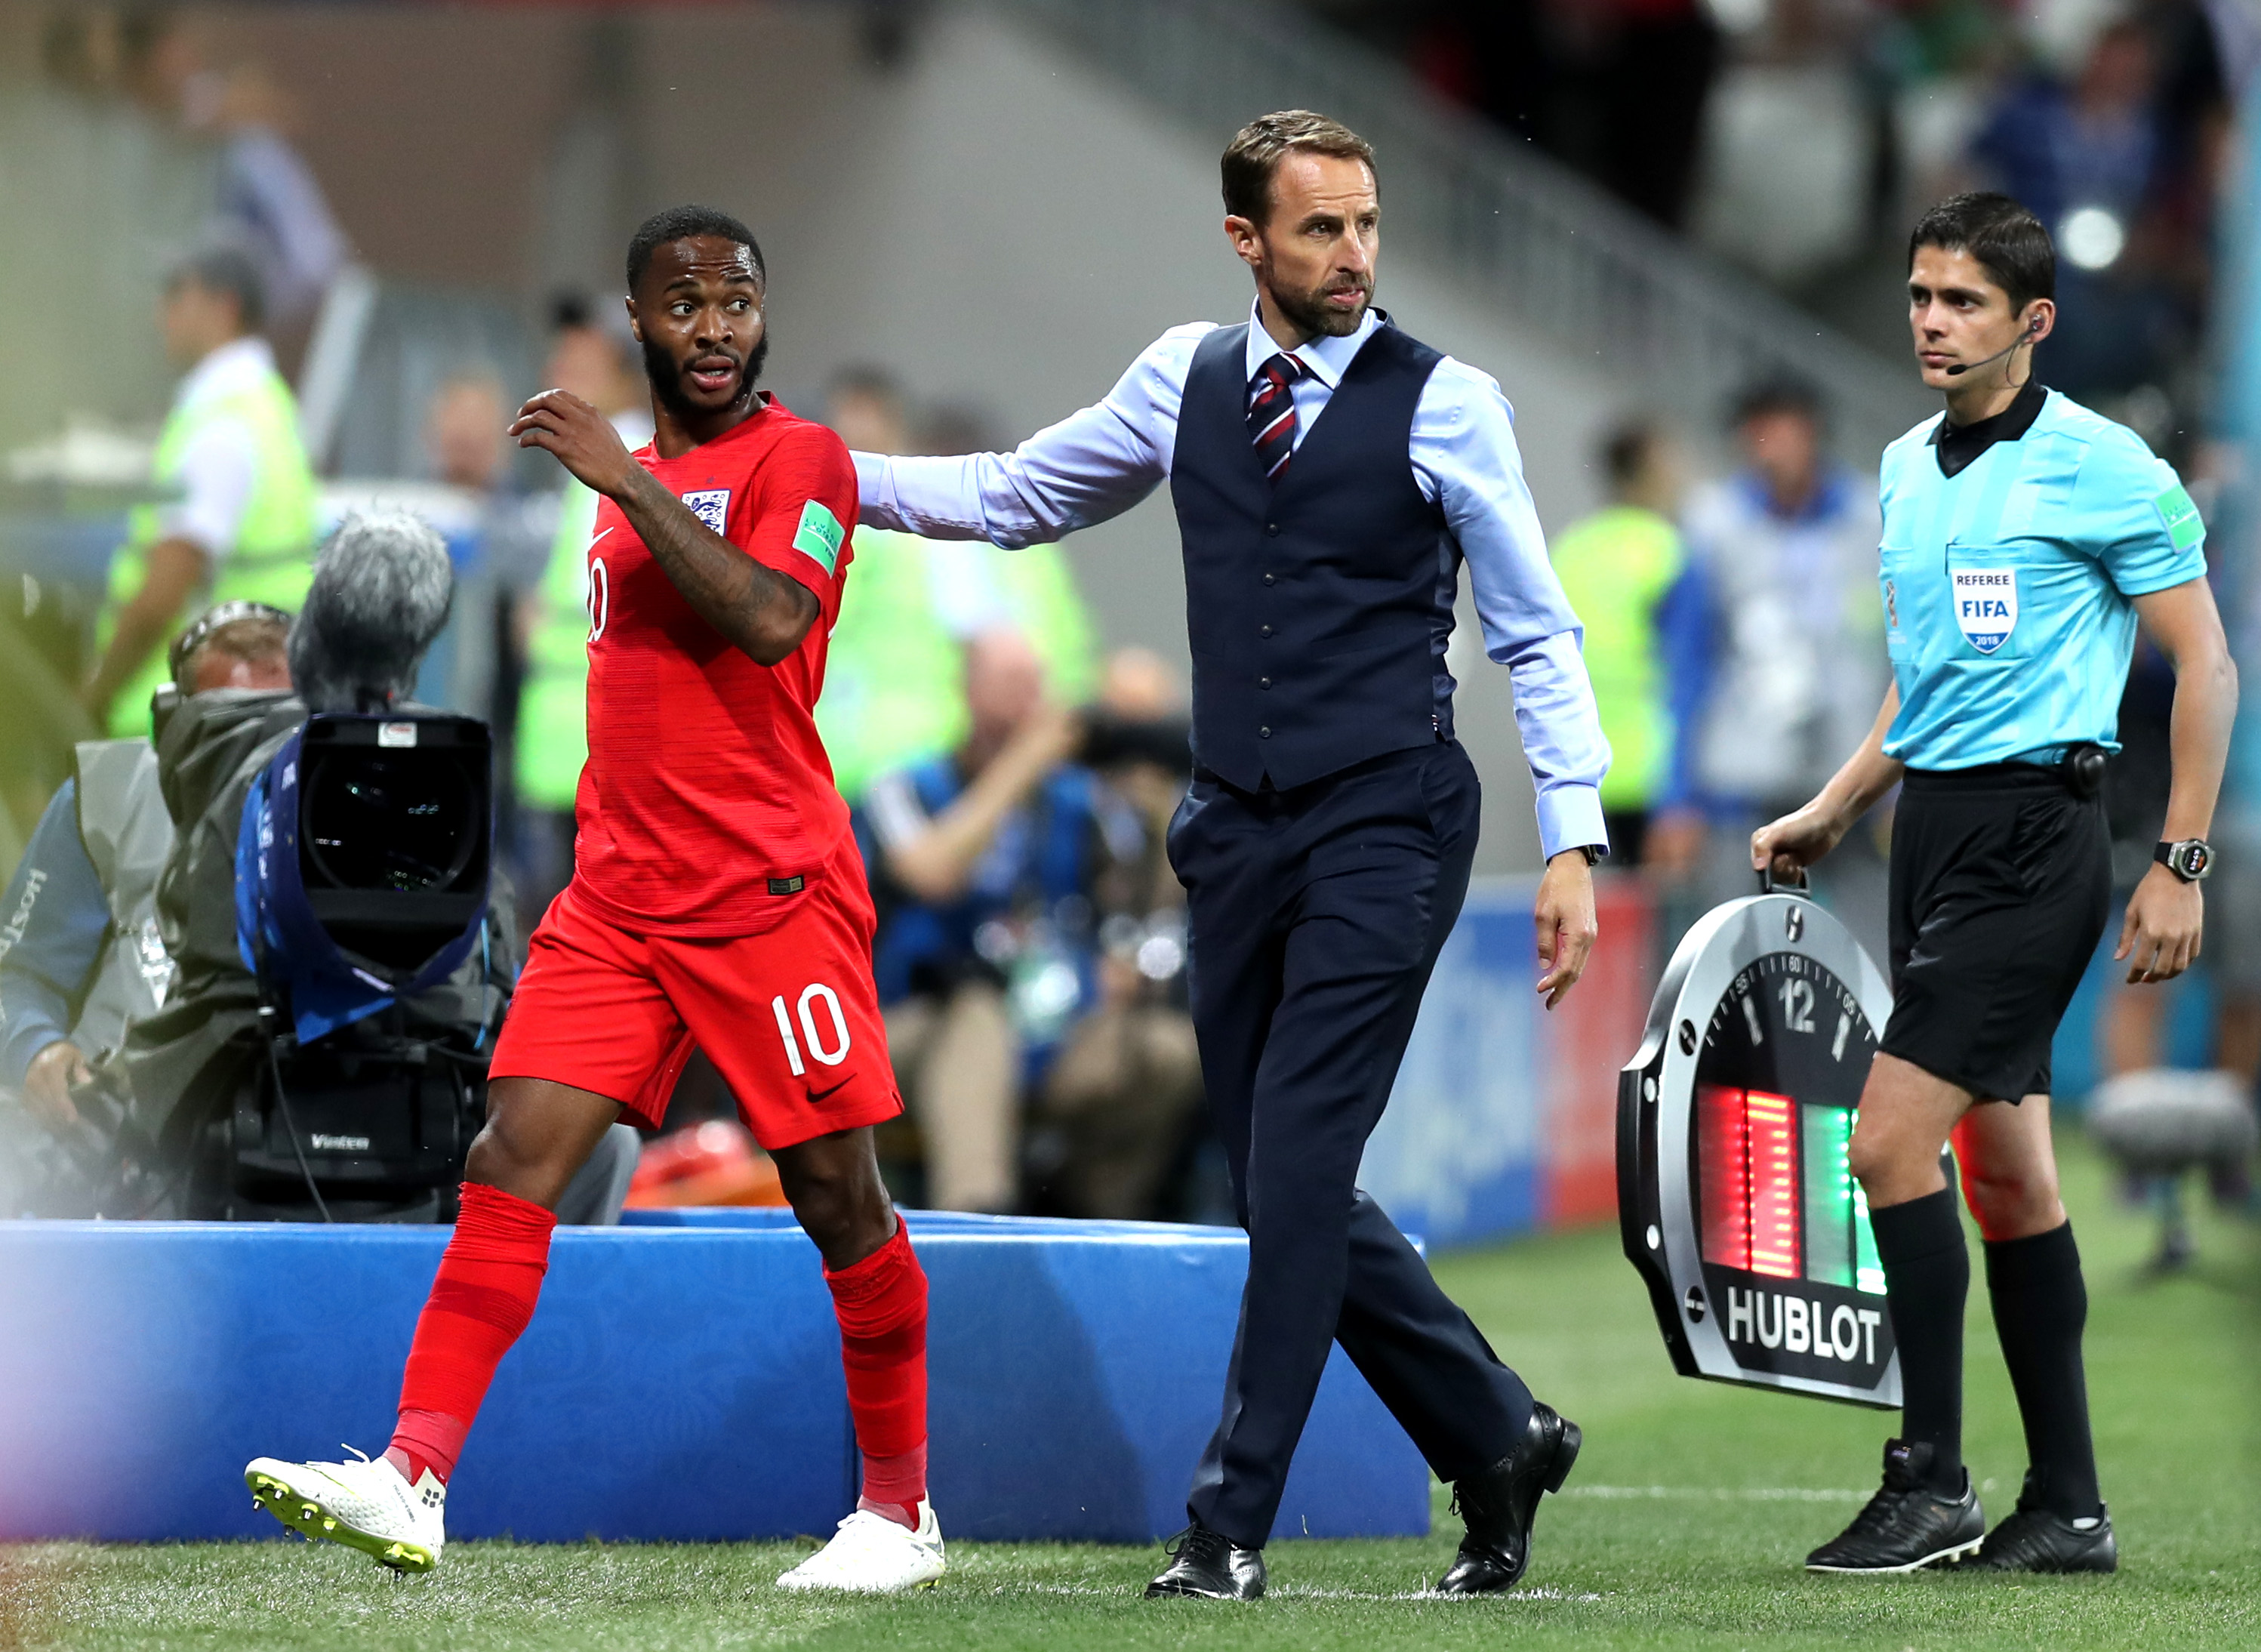 'We blame Ramos!' - Twitterati troll Spain star for England manager shoulder injury